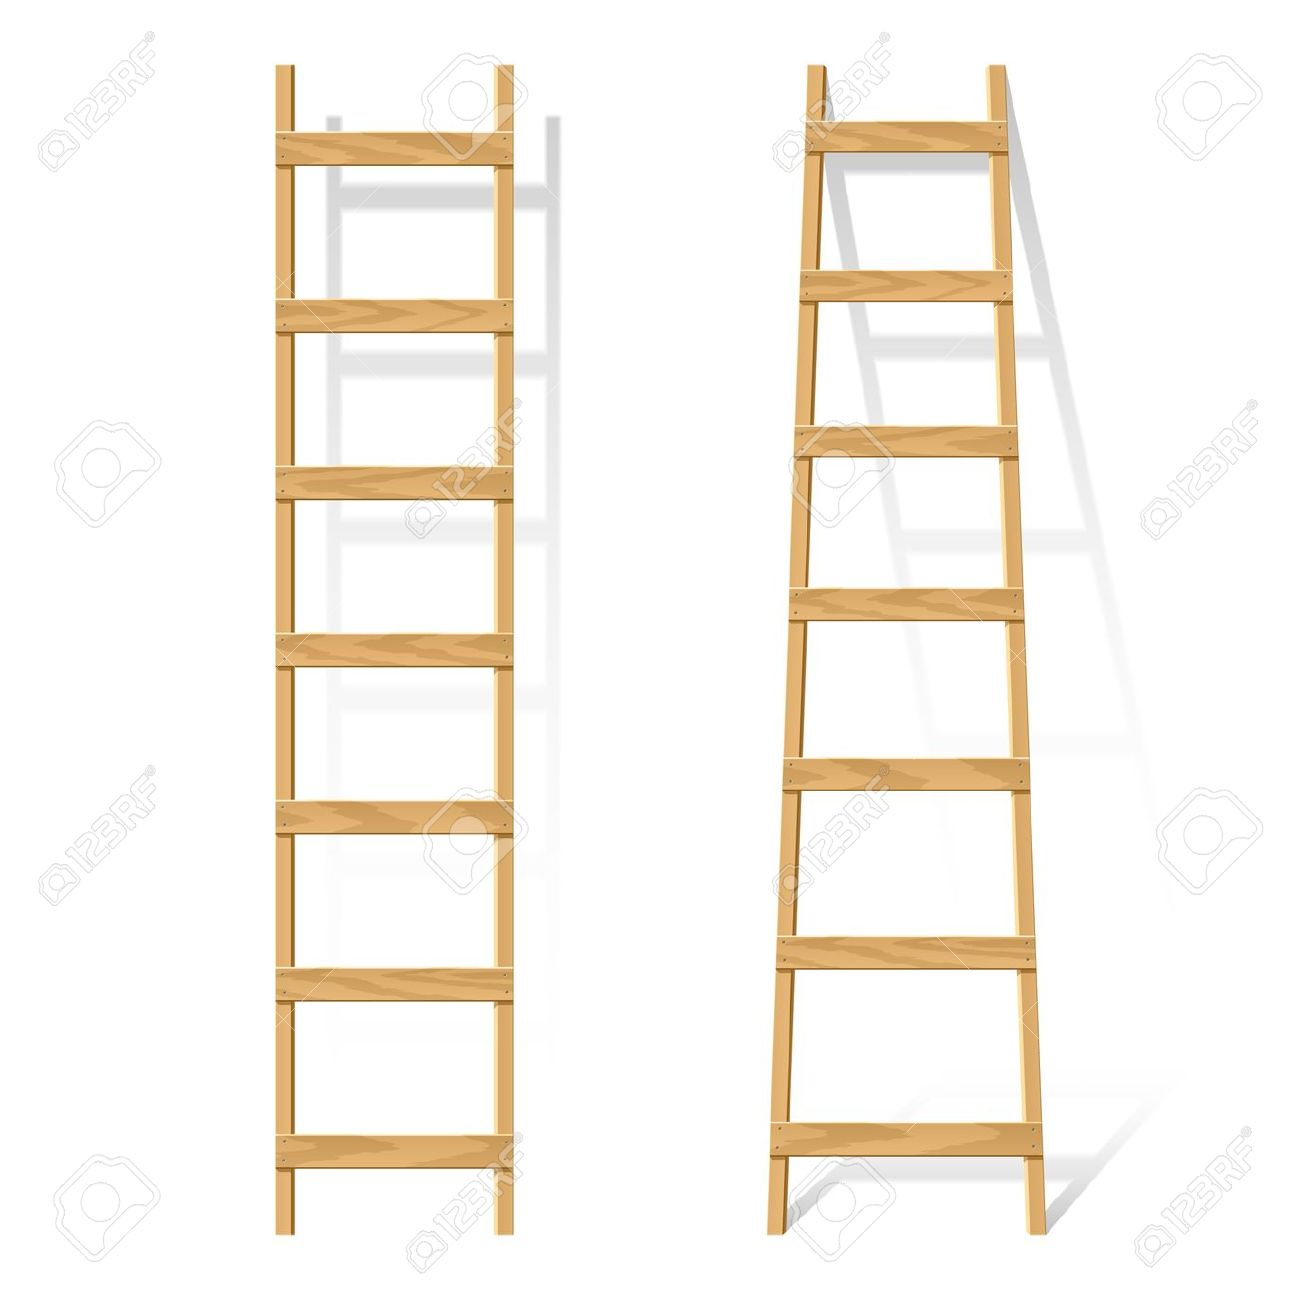 Wooden Ladder Royalty Free Cliparts, Vectors, And Stock.